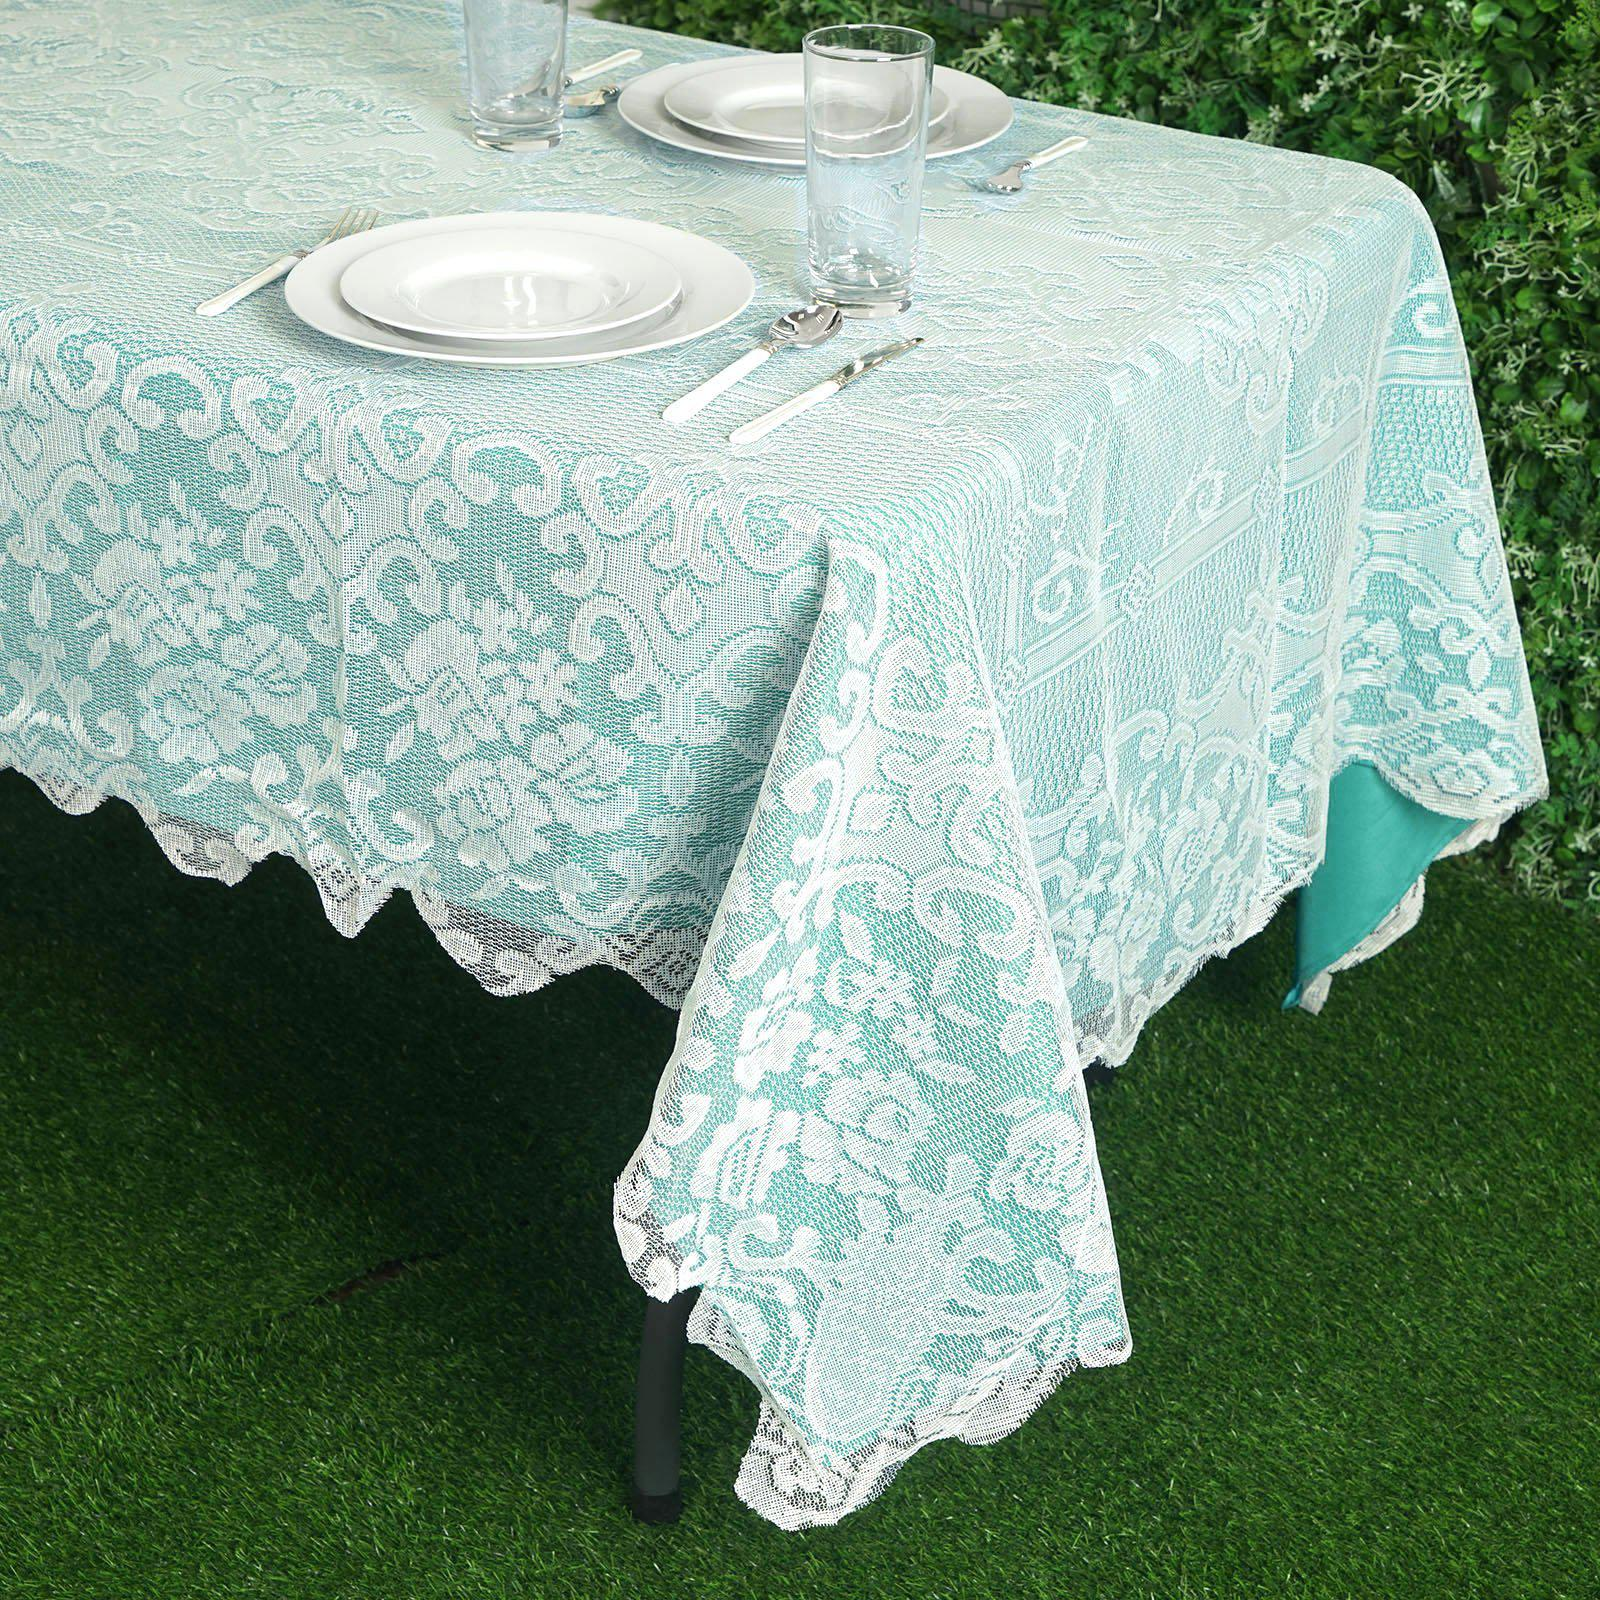 Lace Tablecloths Oval 300x300.jpg Tablecloths Factory